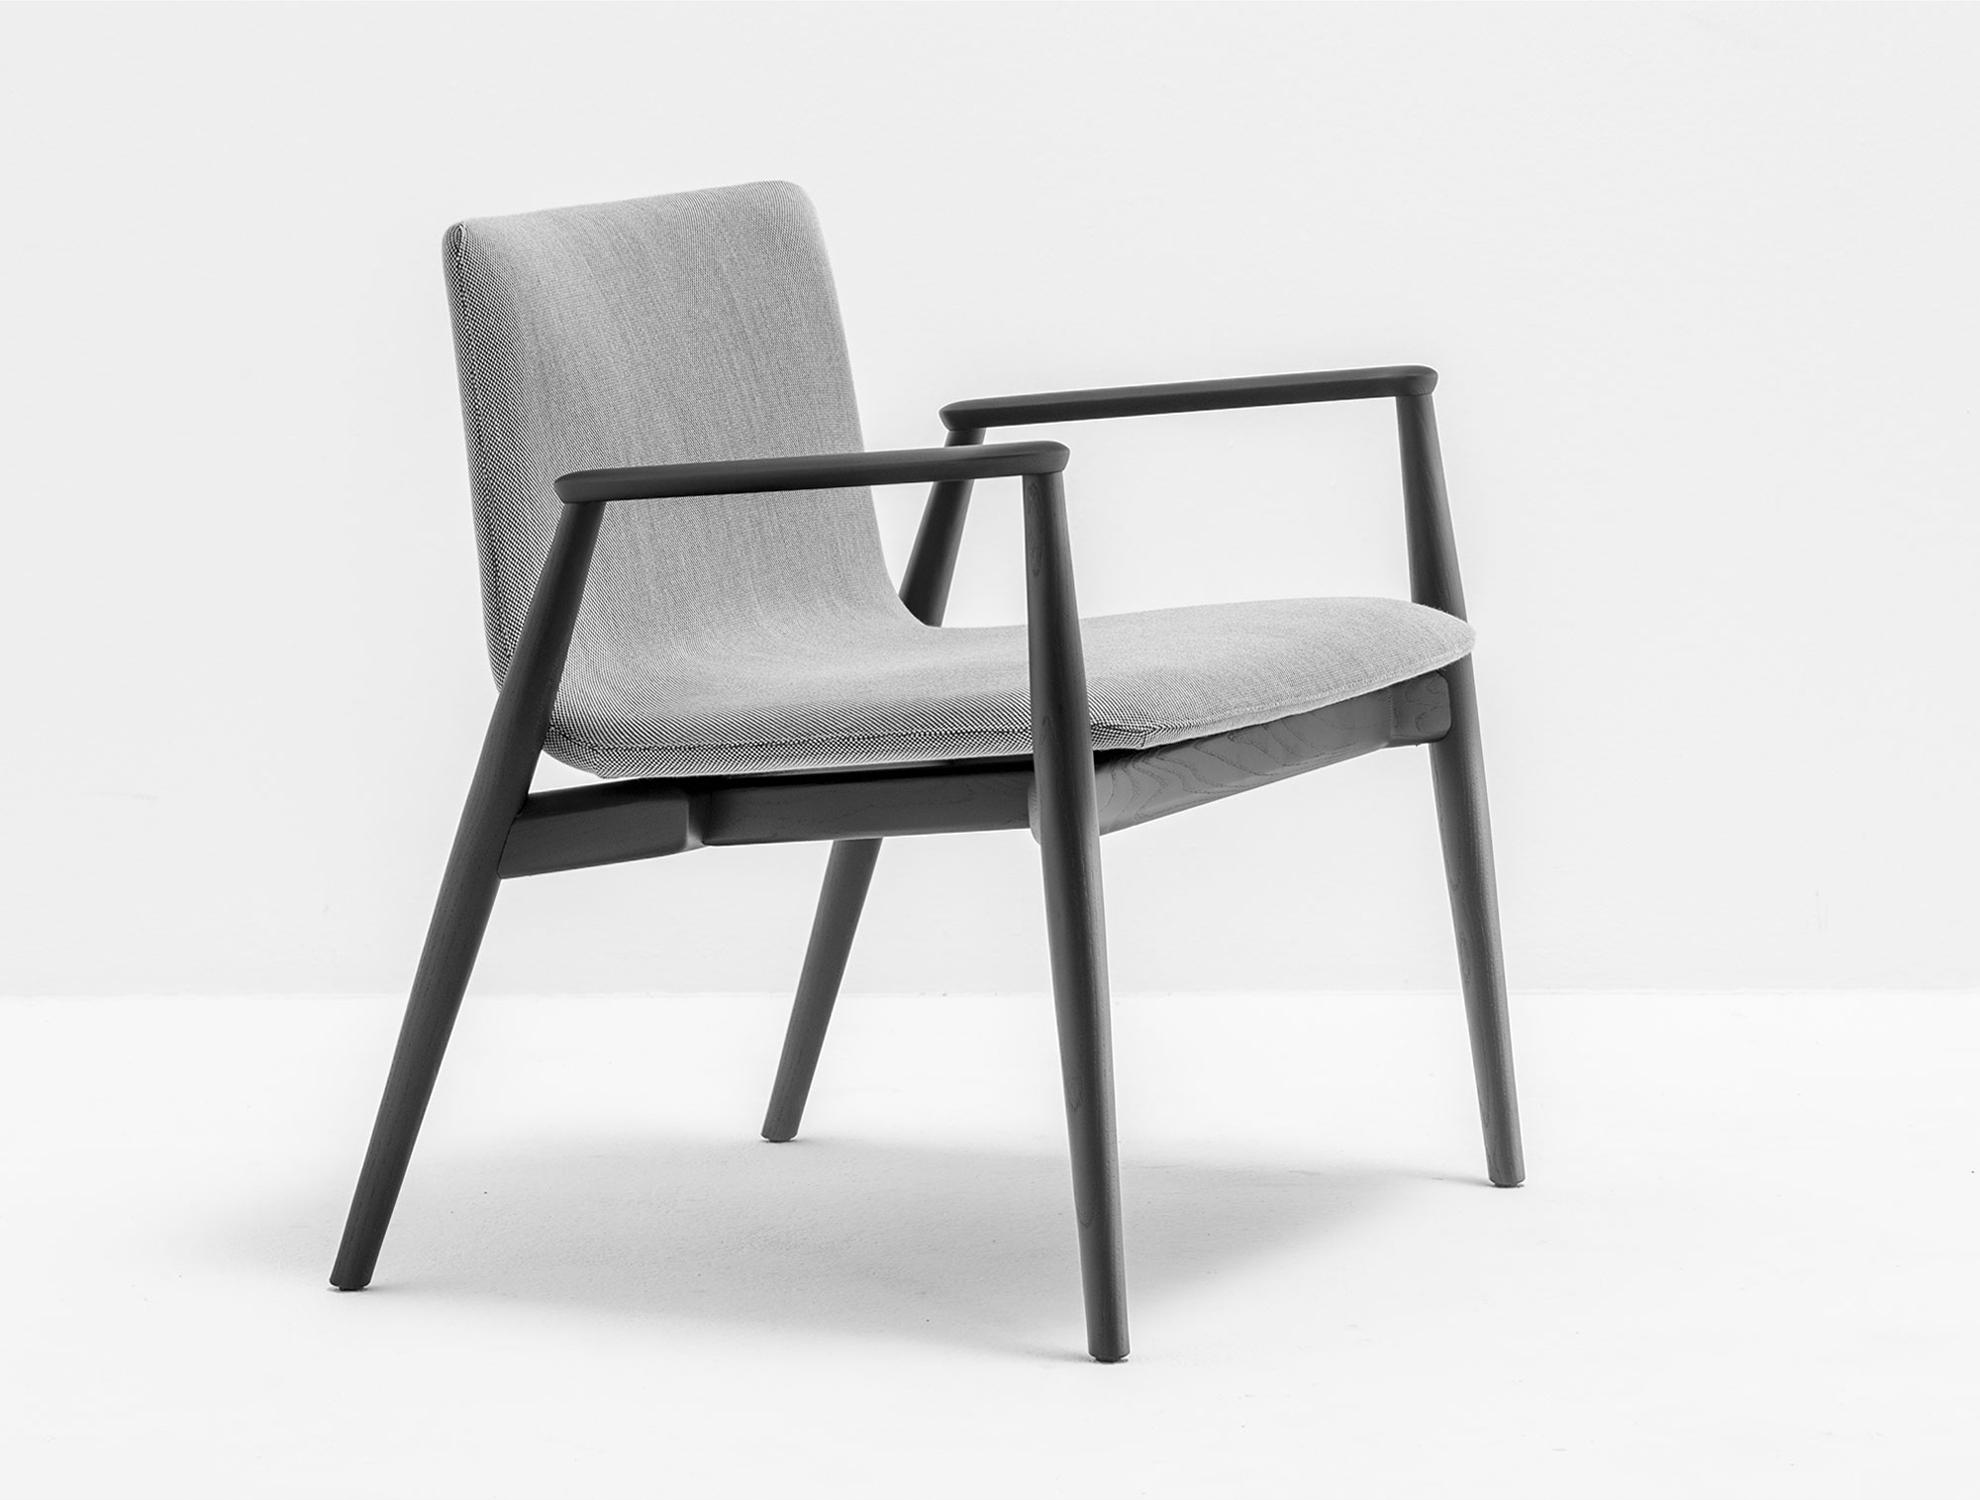 Malm 214 Lounge 296 Armchairs From Pedrali Architonic